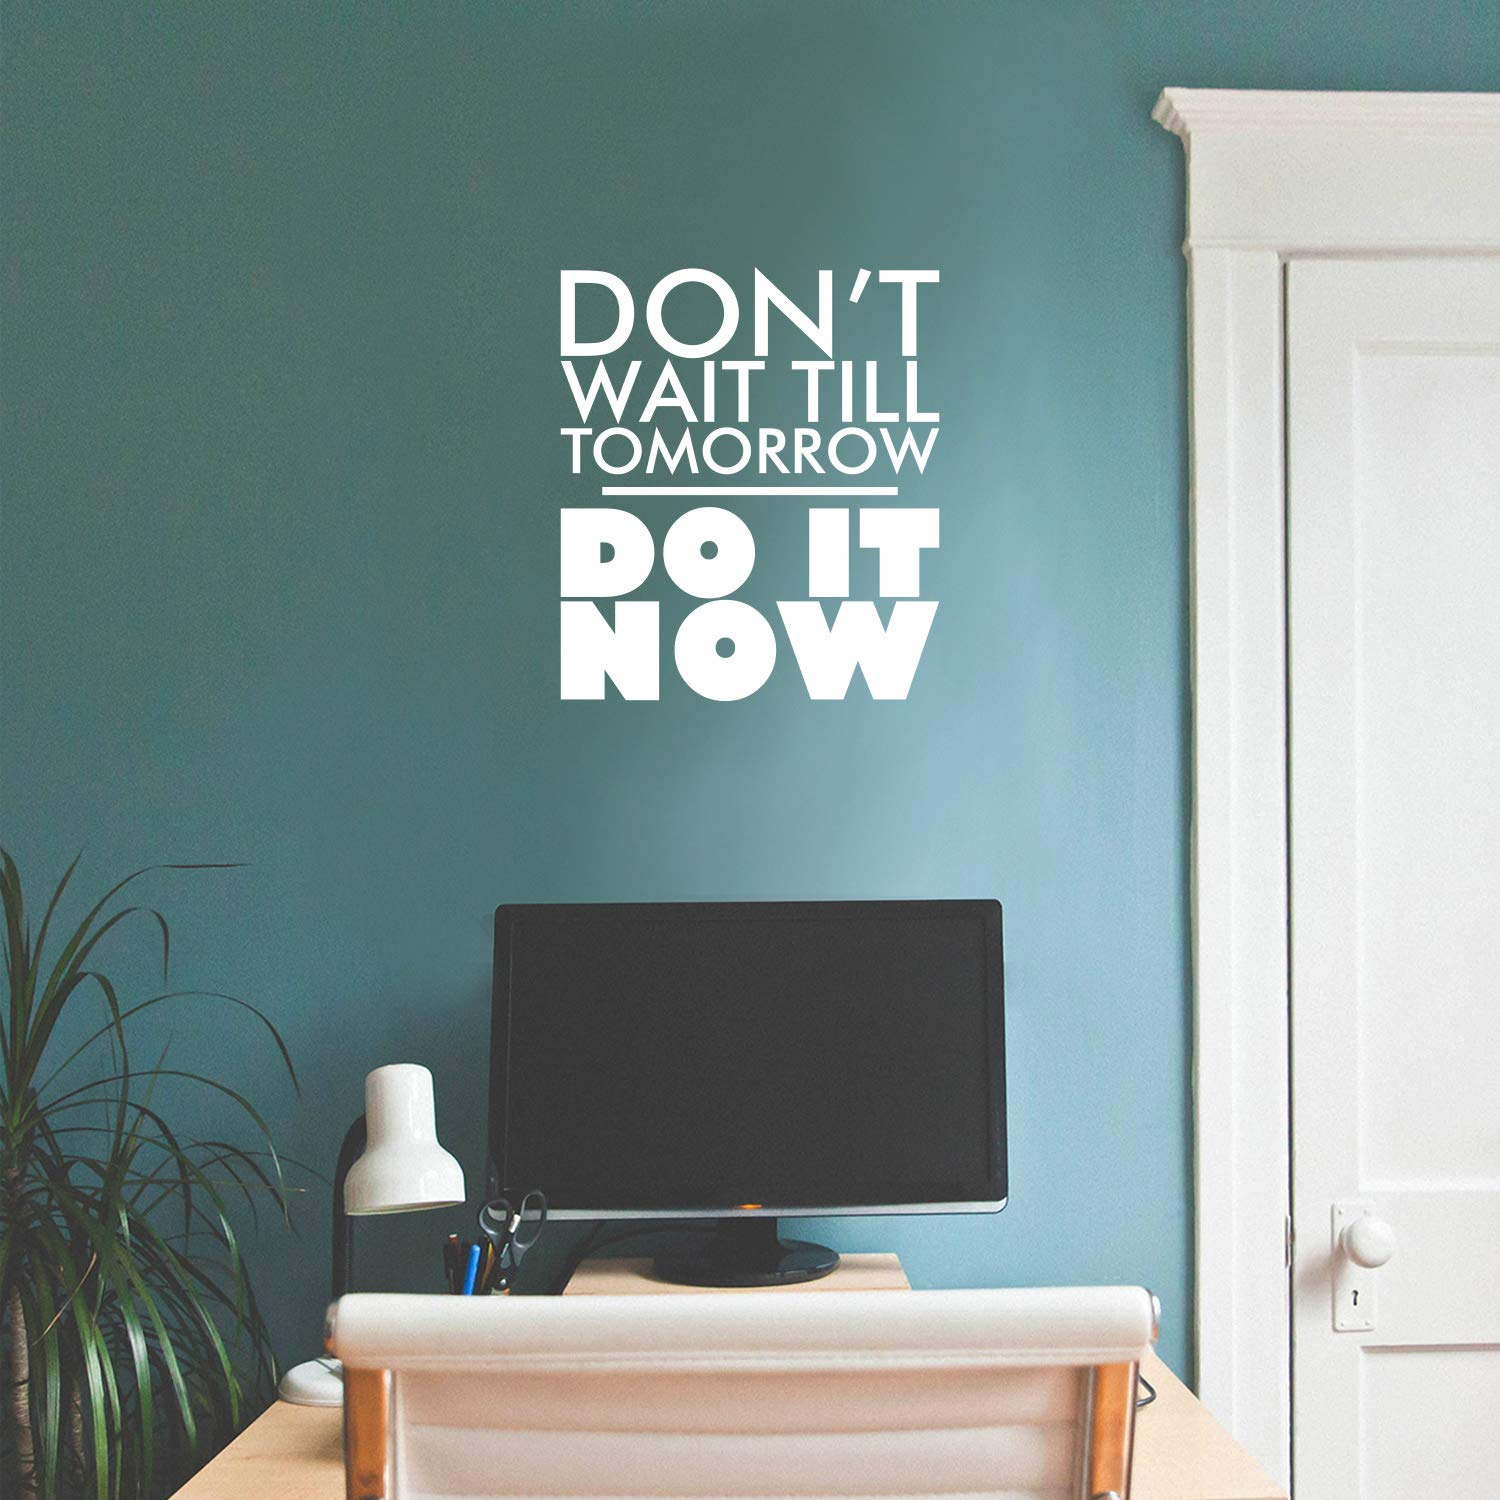 Vinyl Wall Art Decal - Don't Wait Til Tomorrow Do It Now - 19.5